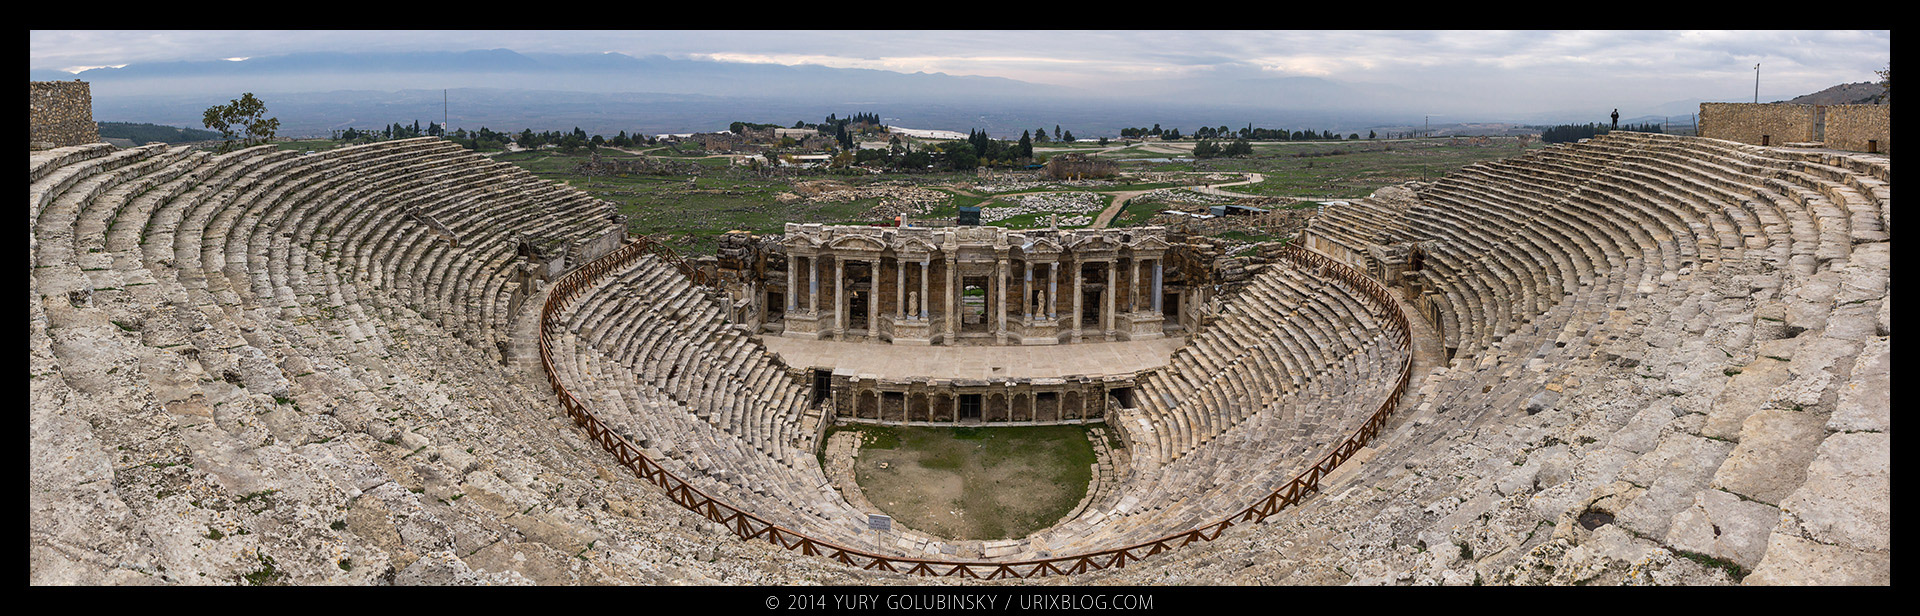 Hierapolis, theatre, scene, ancient, eastern, roman, greek, city, ruins, excavations, byzantine, byzantium, empire, Denizli, Turkey, panorama, 2014